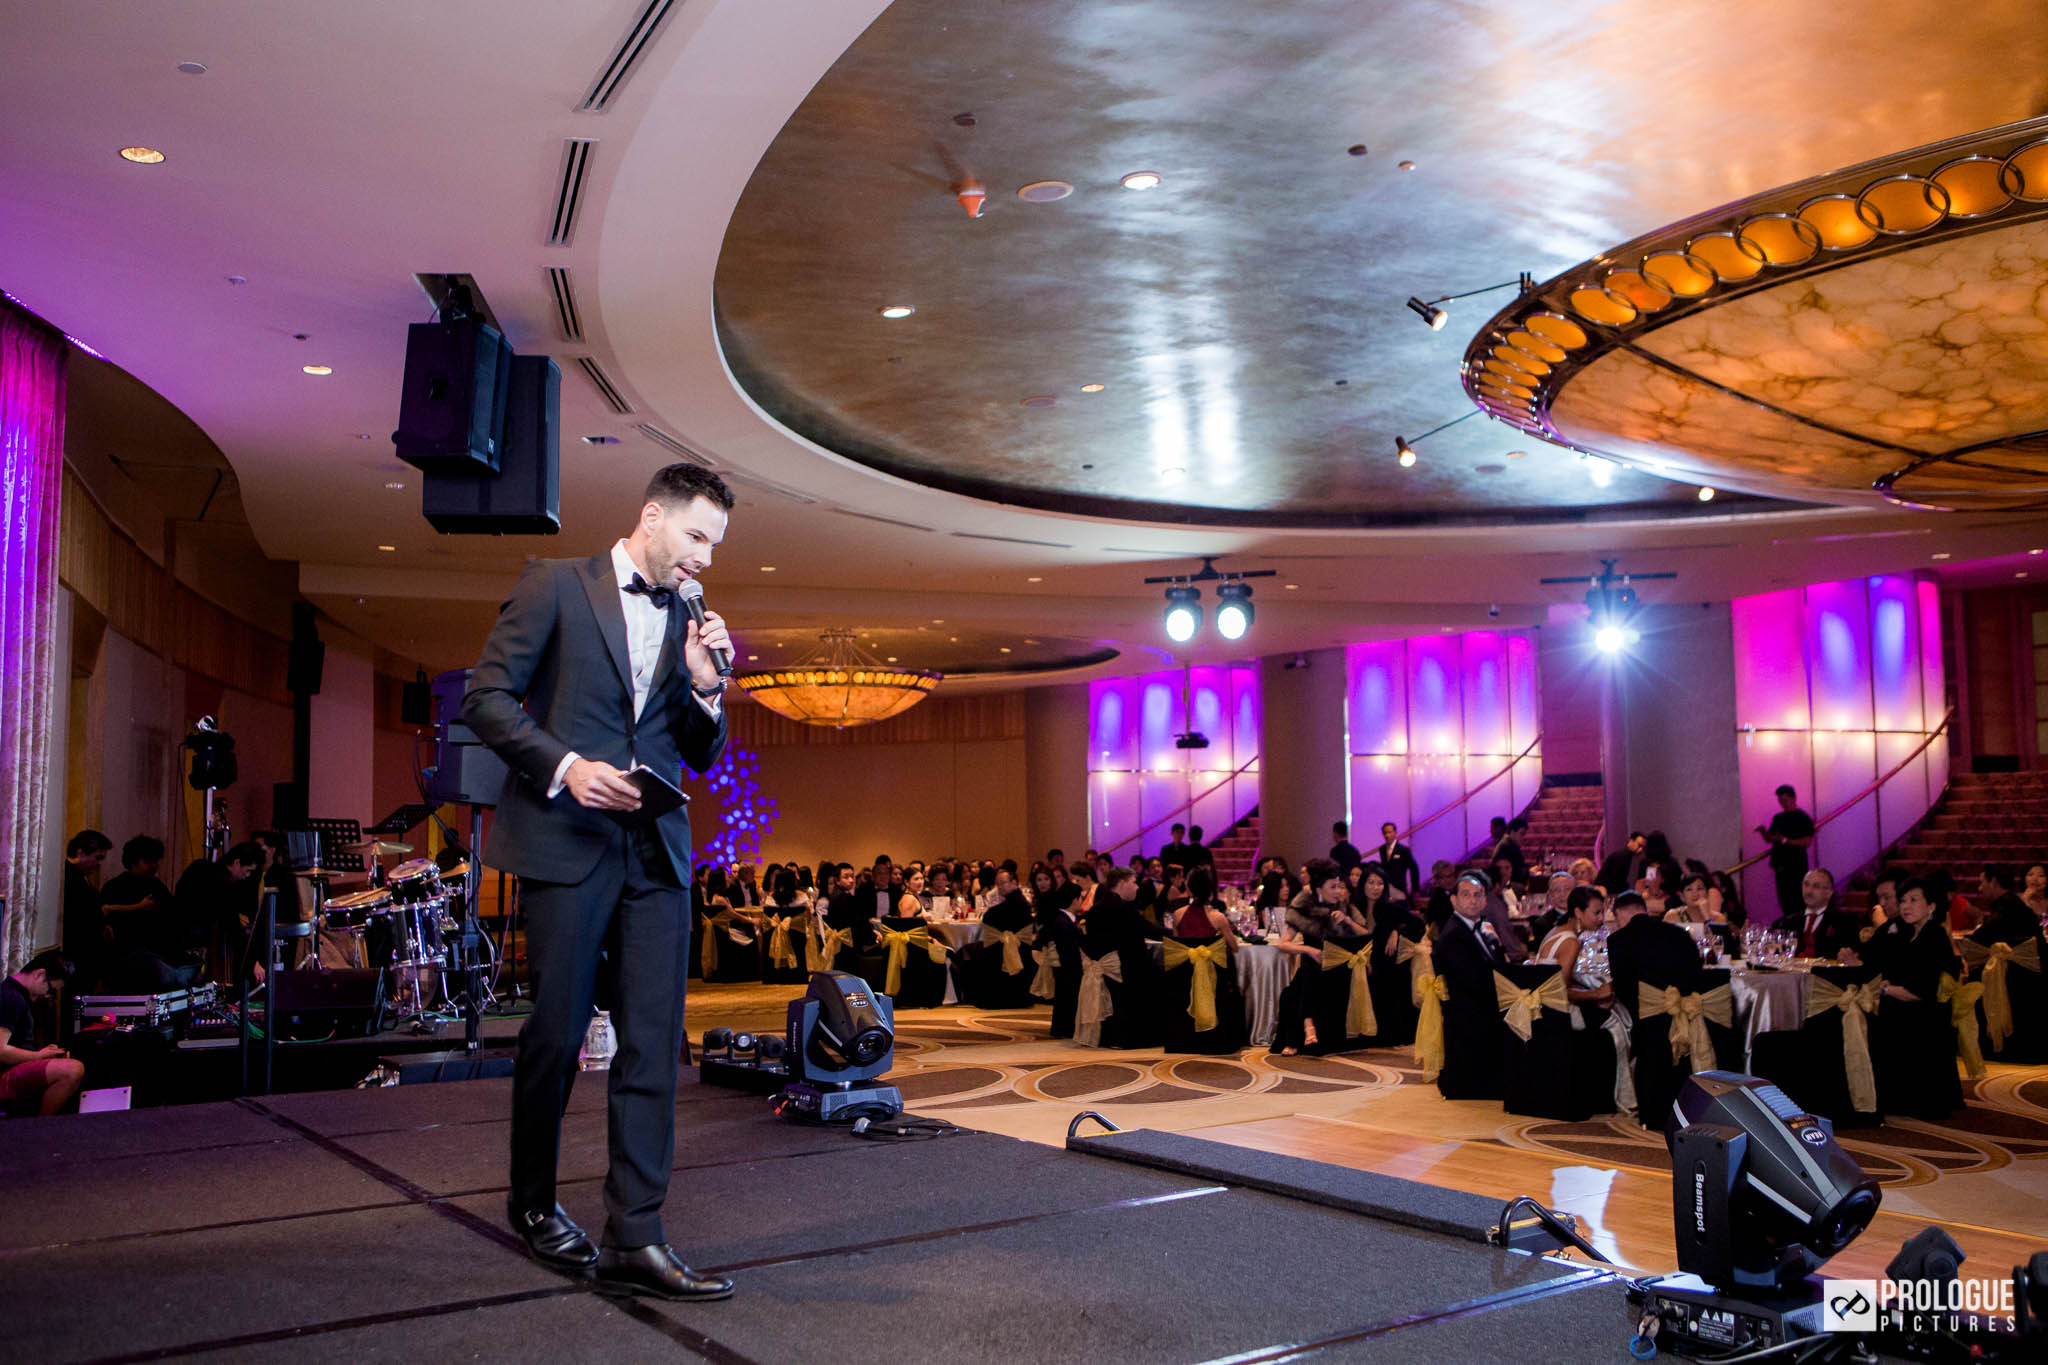 mouawad-125th-anniversary-event-photography-singapore-prologue-pictures-11